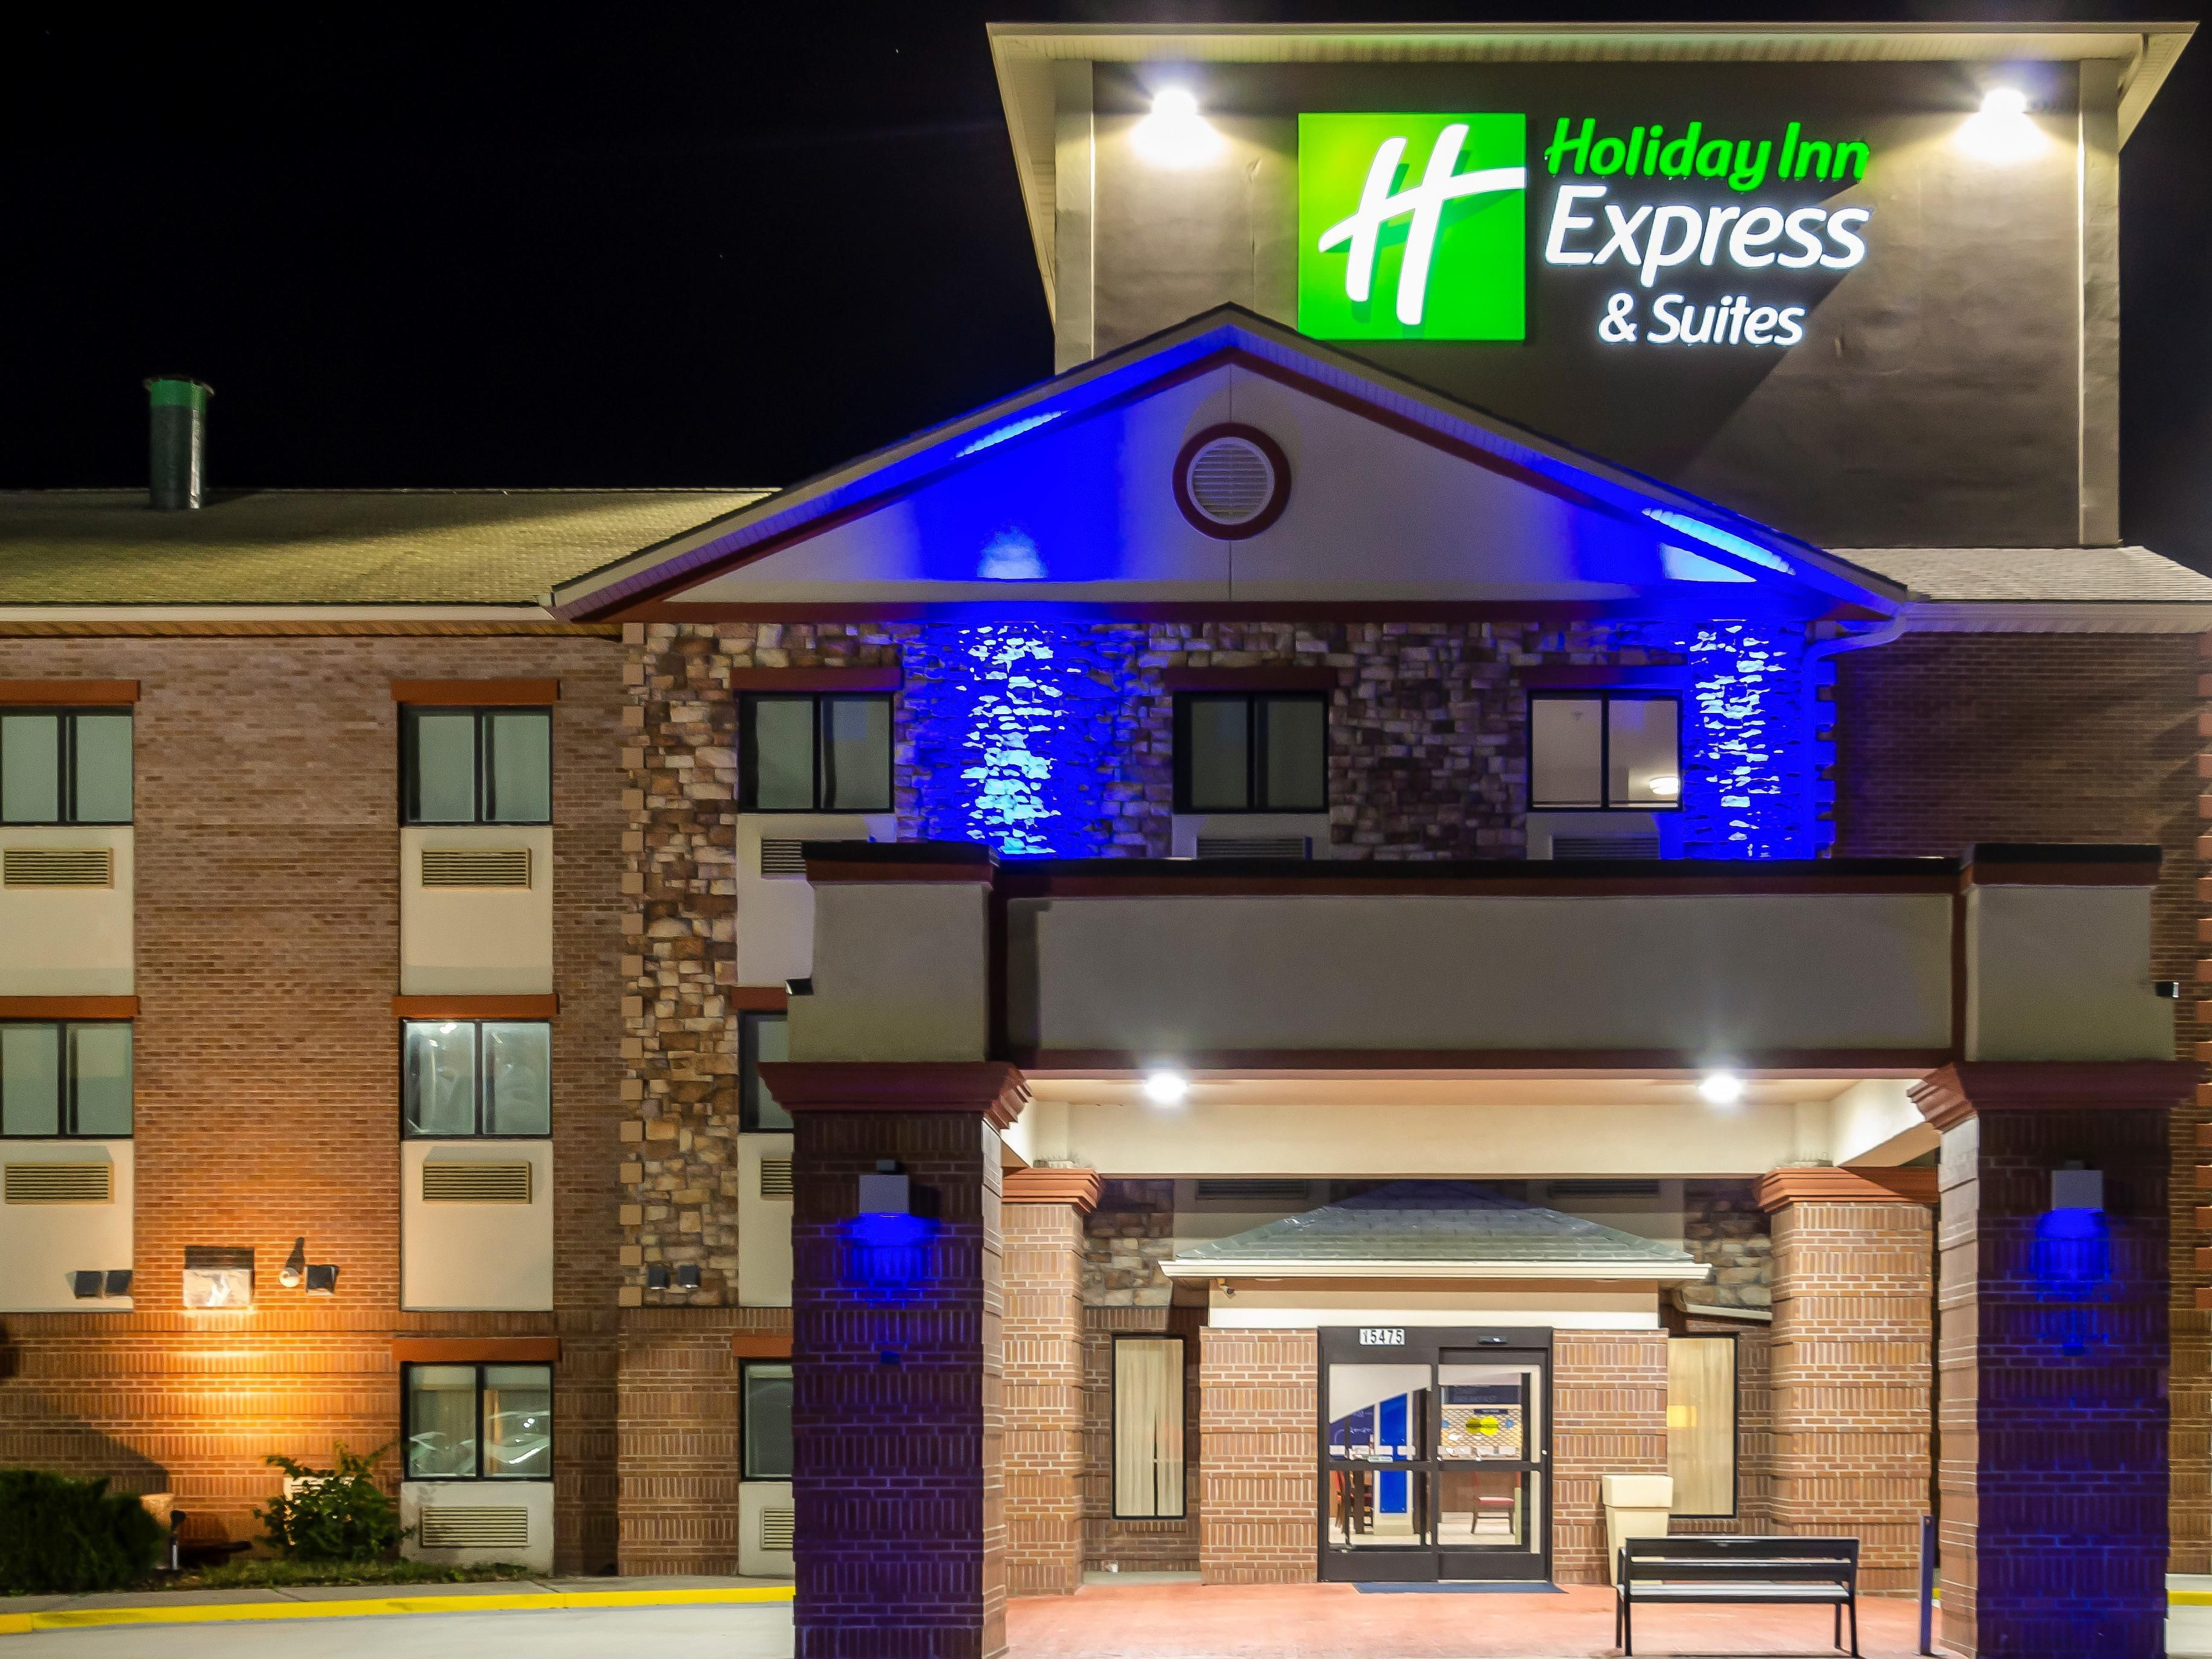 Holiday Inn Express Olathe Hotels | Budget Hotels in Olathe